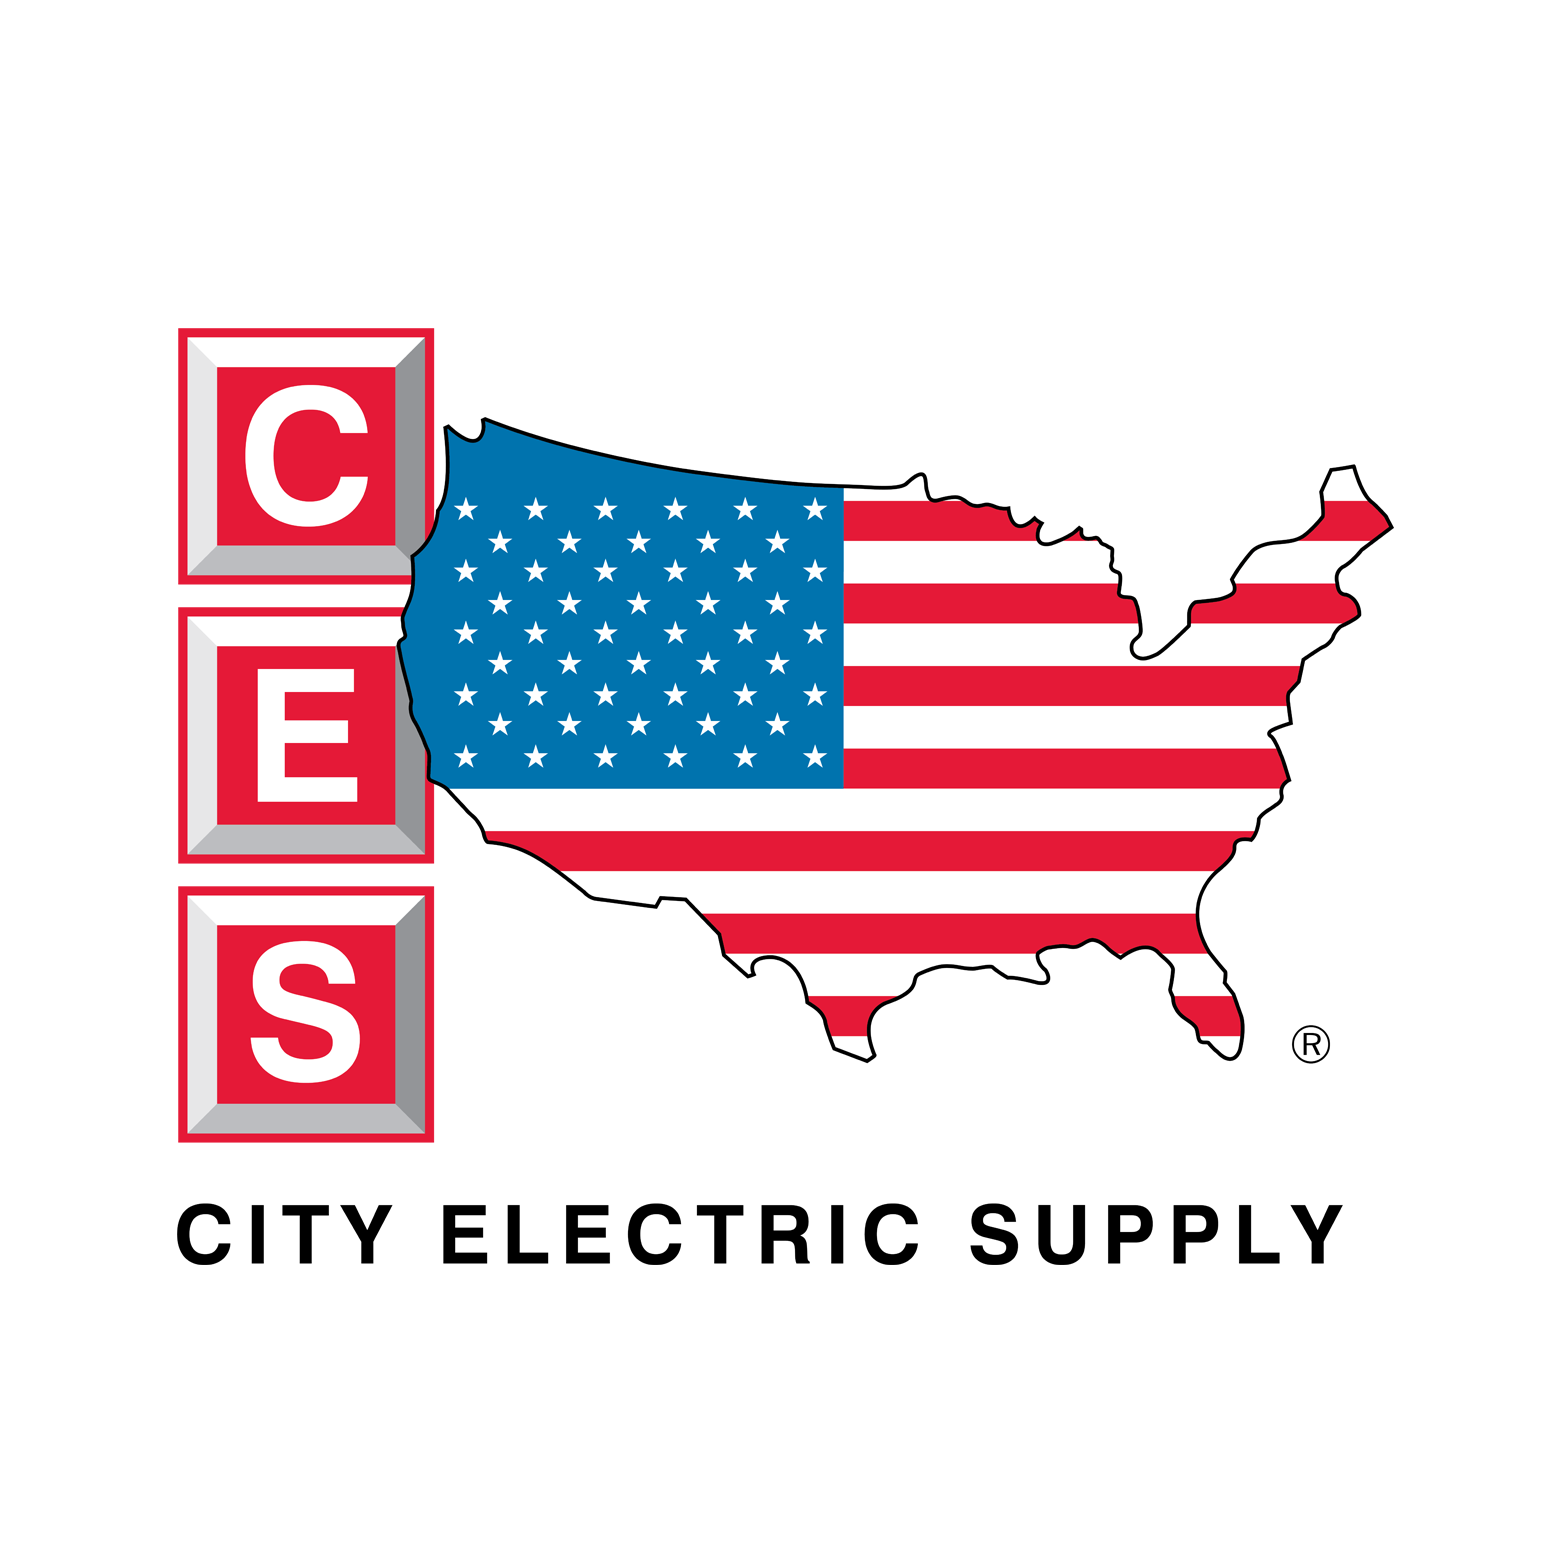 City Electric Supply Florida City